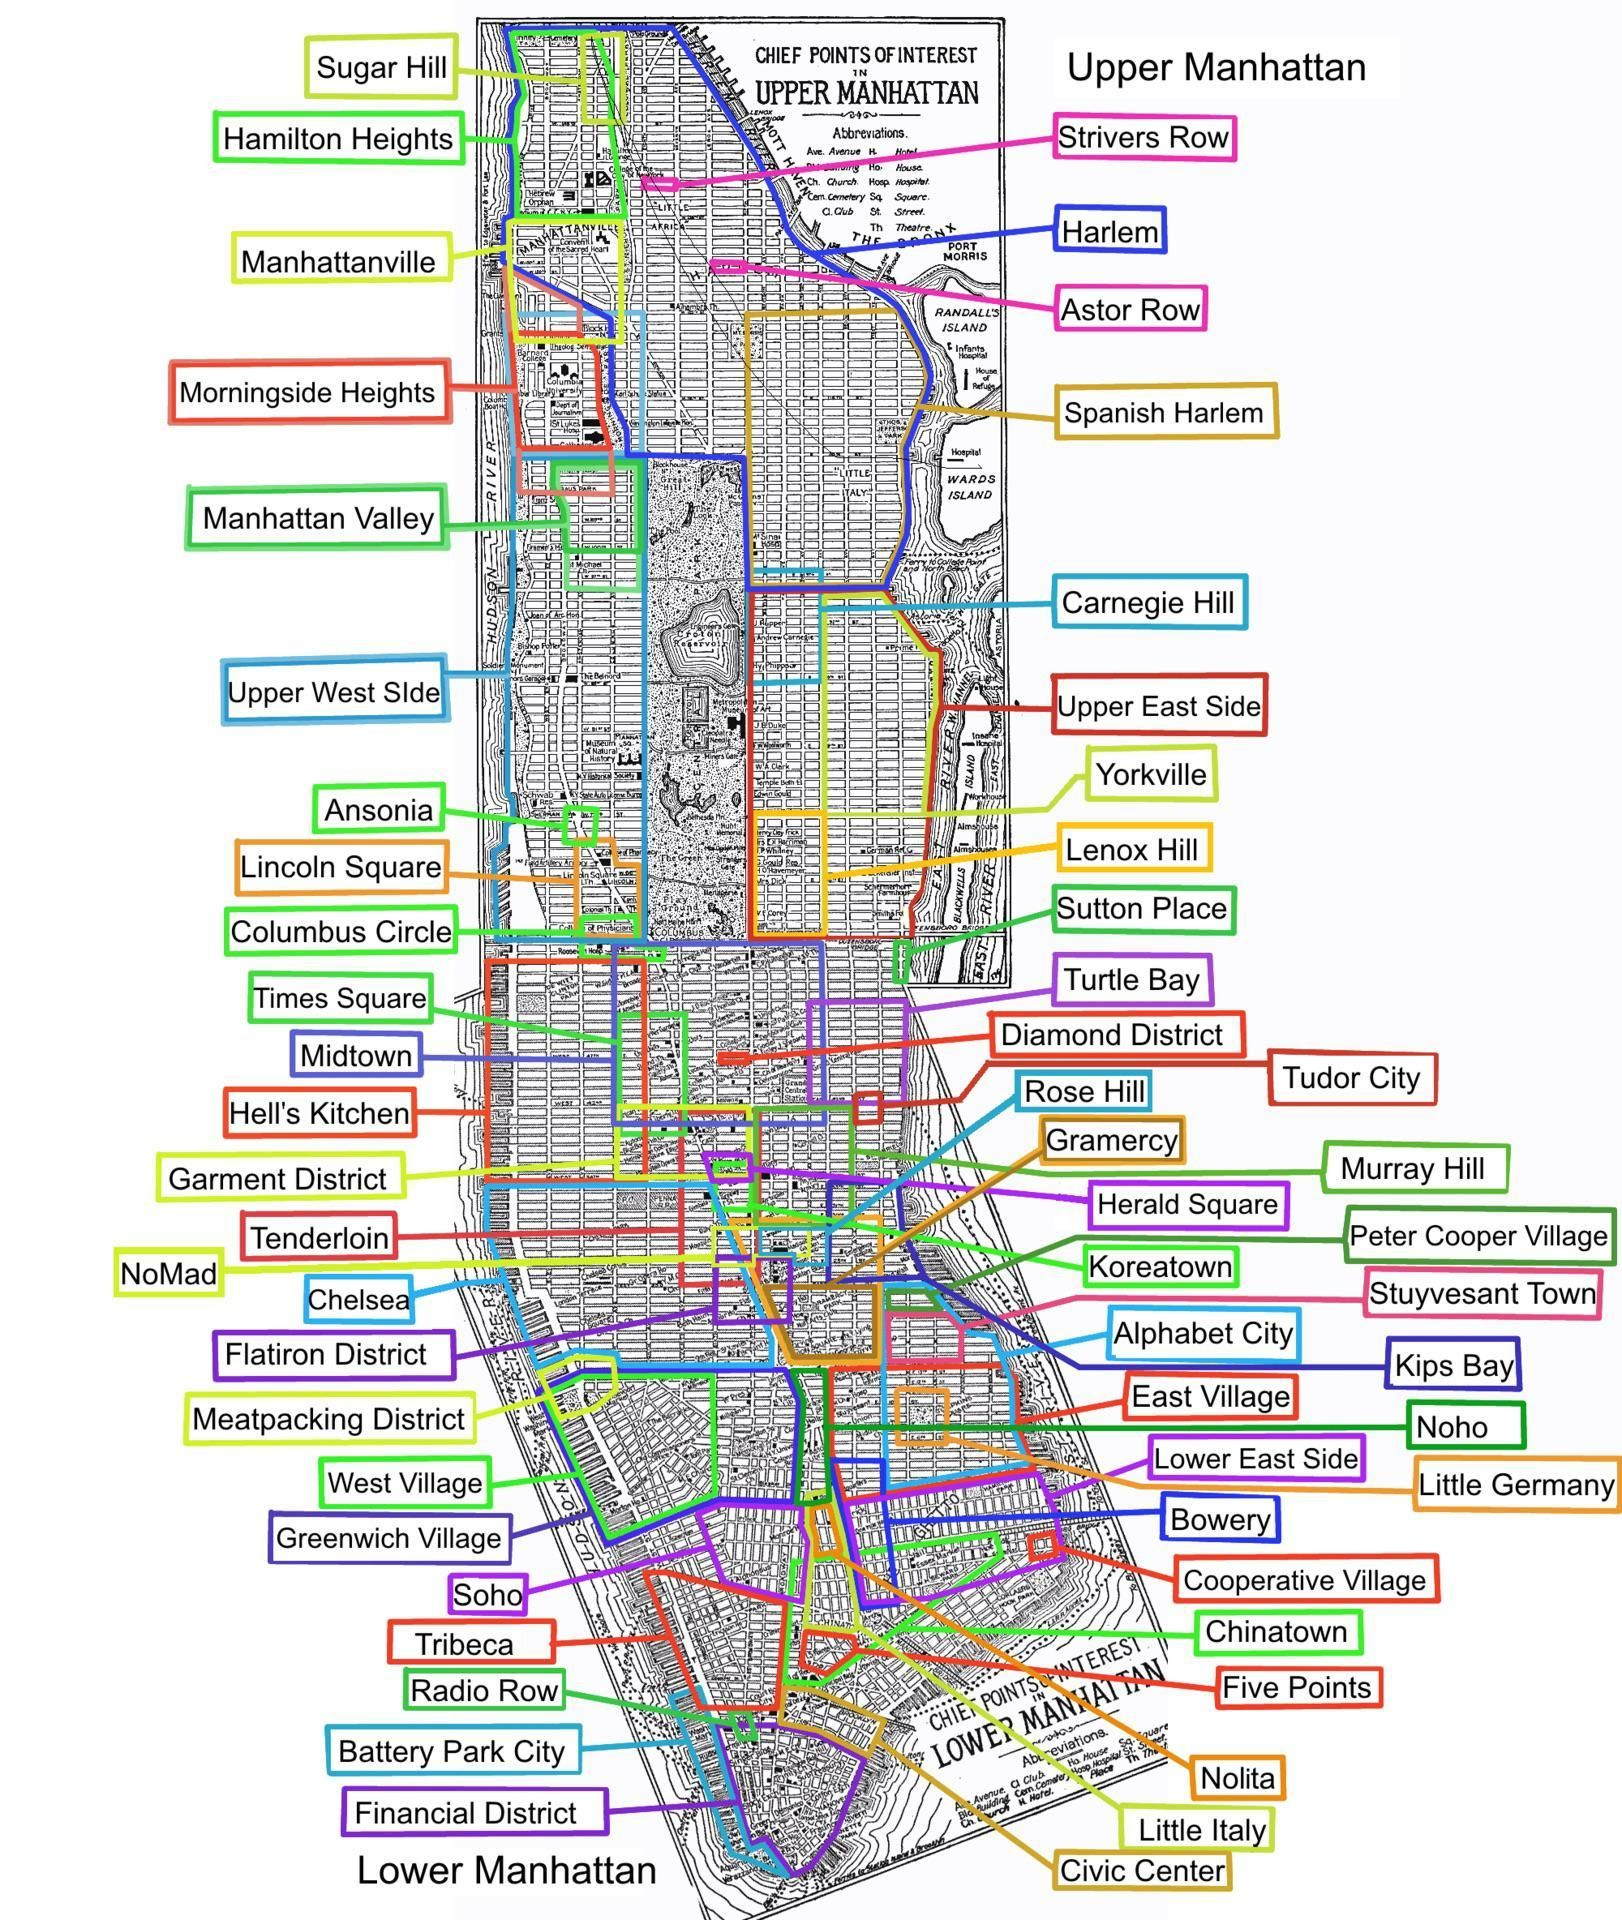 Neighborhoods of New York City (With images) Manhattan